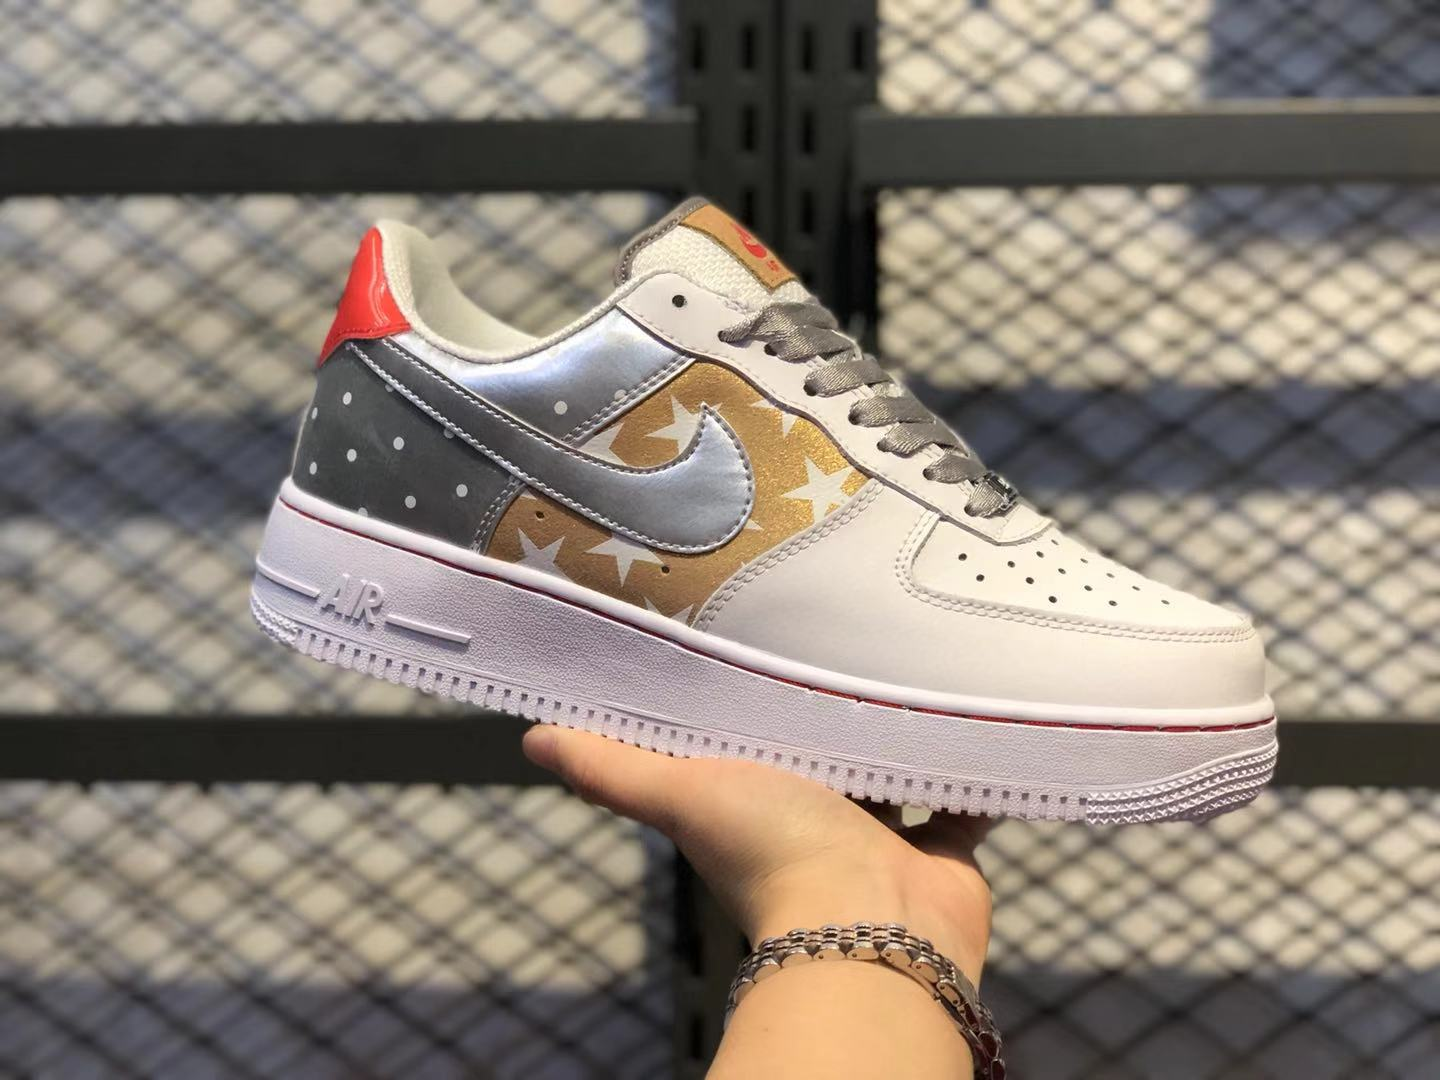 2020 Nike Air Force 1 White/Metallic Silver-Brown CT3437-100 For Online Sale